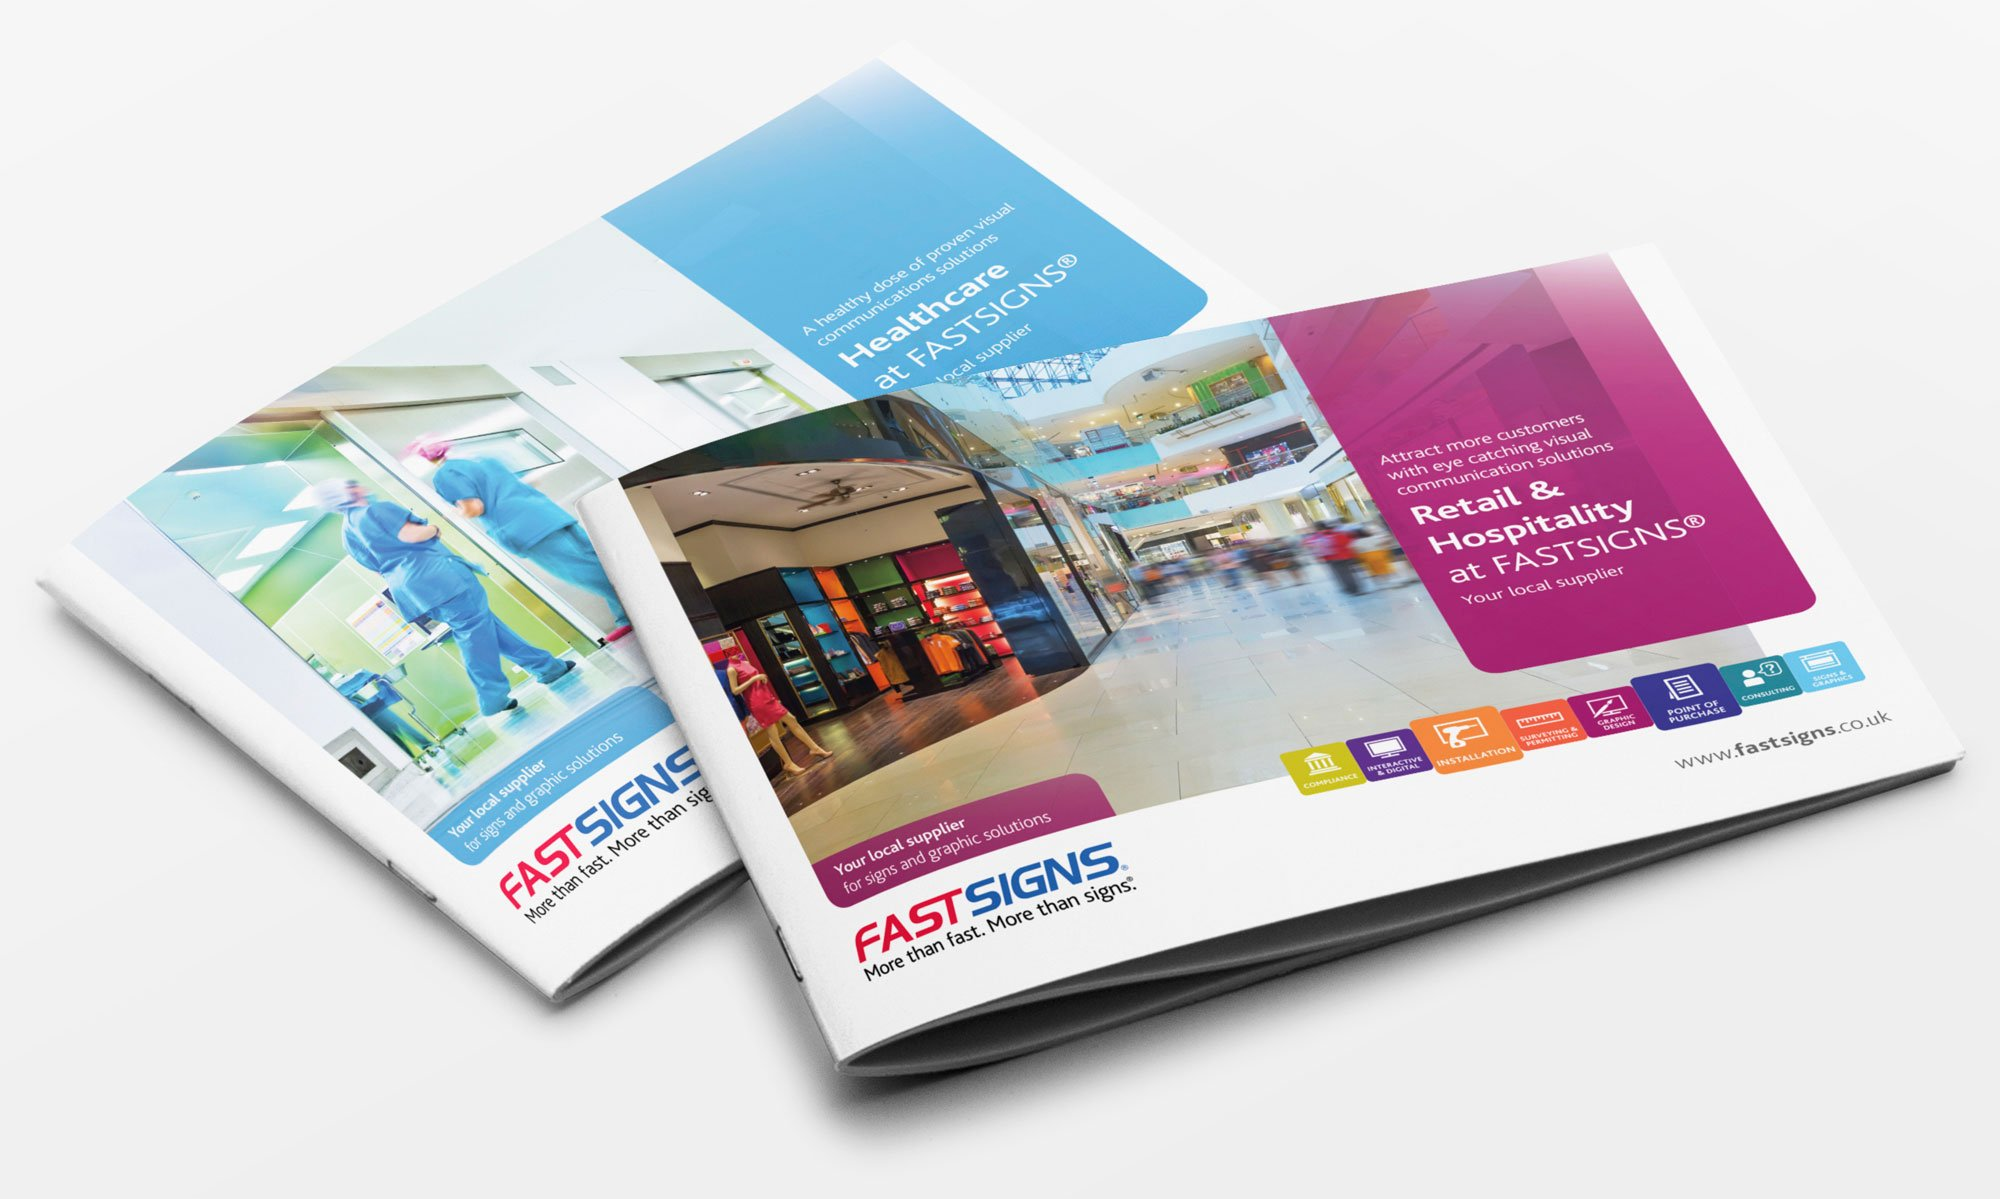 FastSigns brochure covers